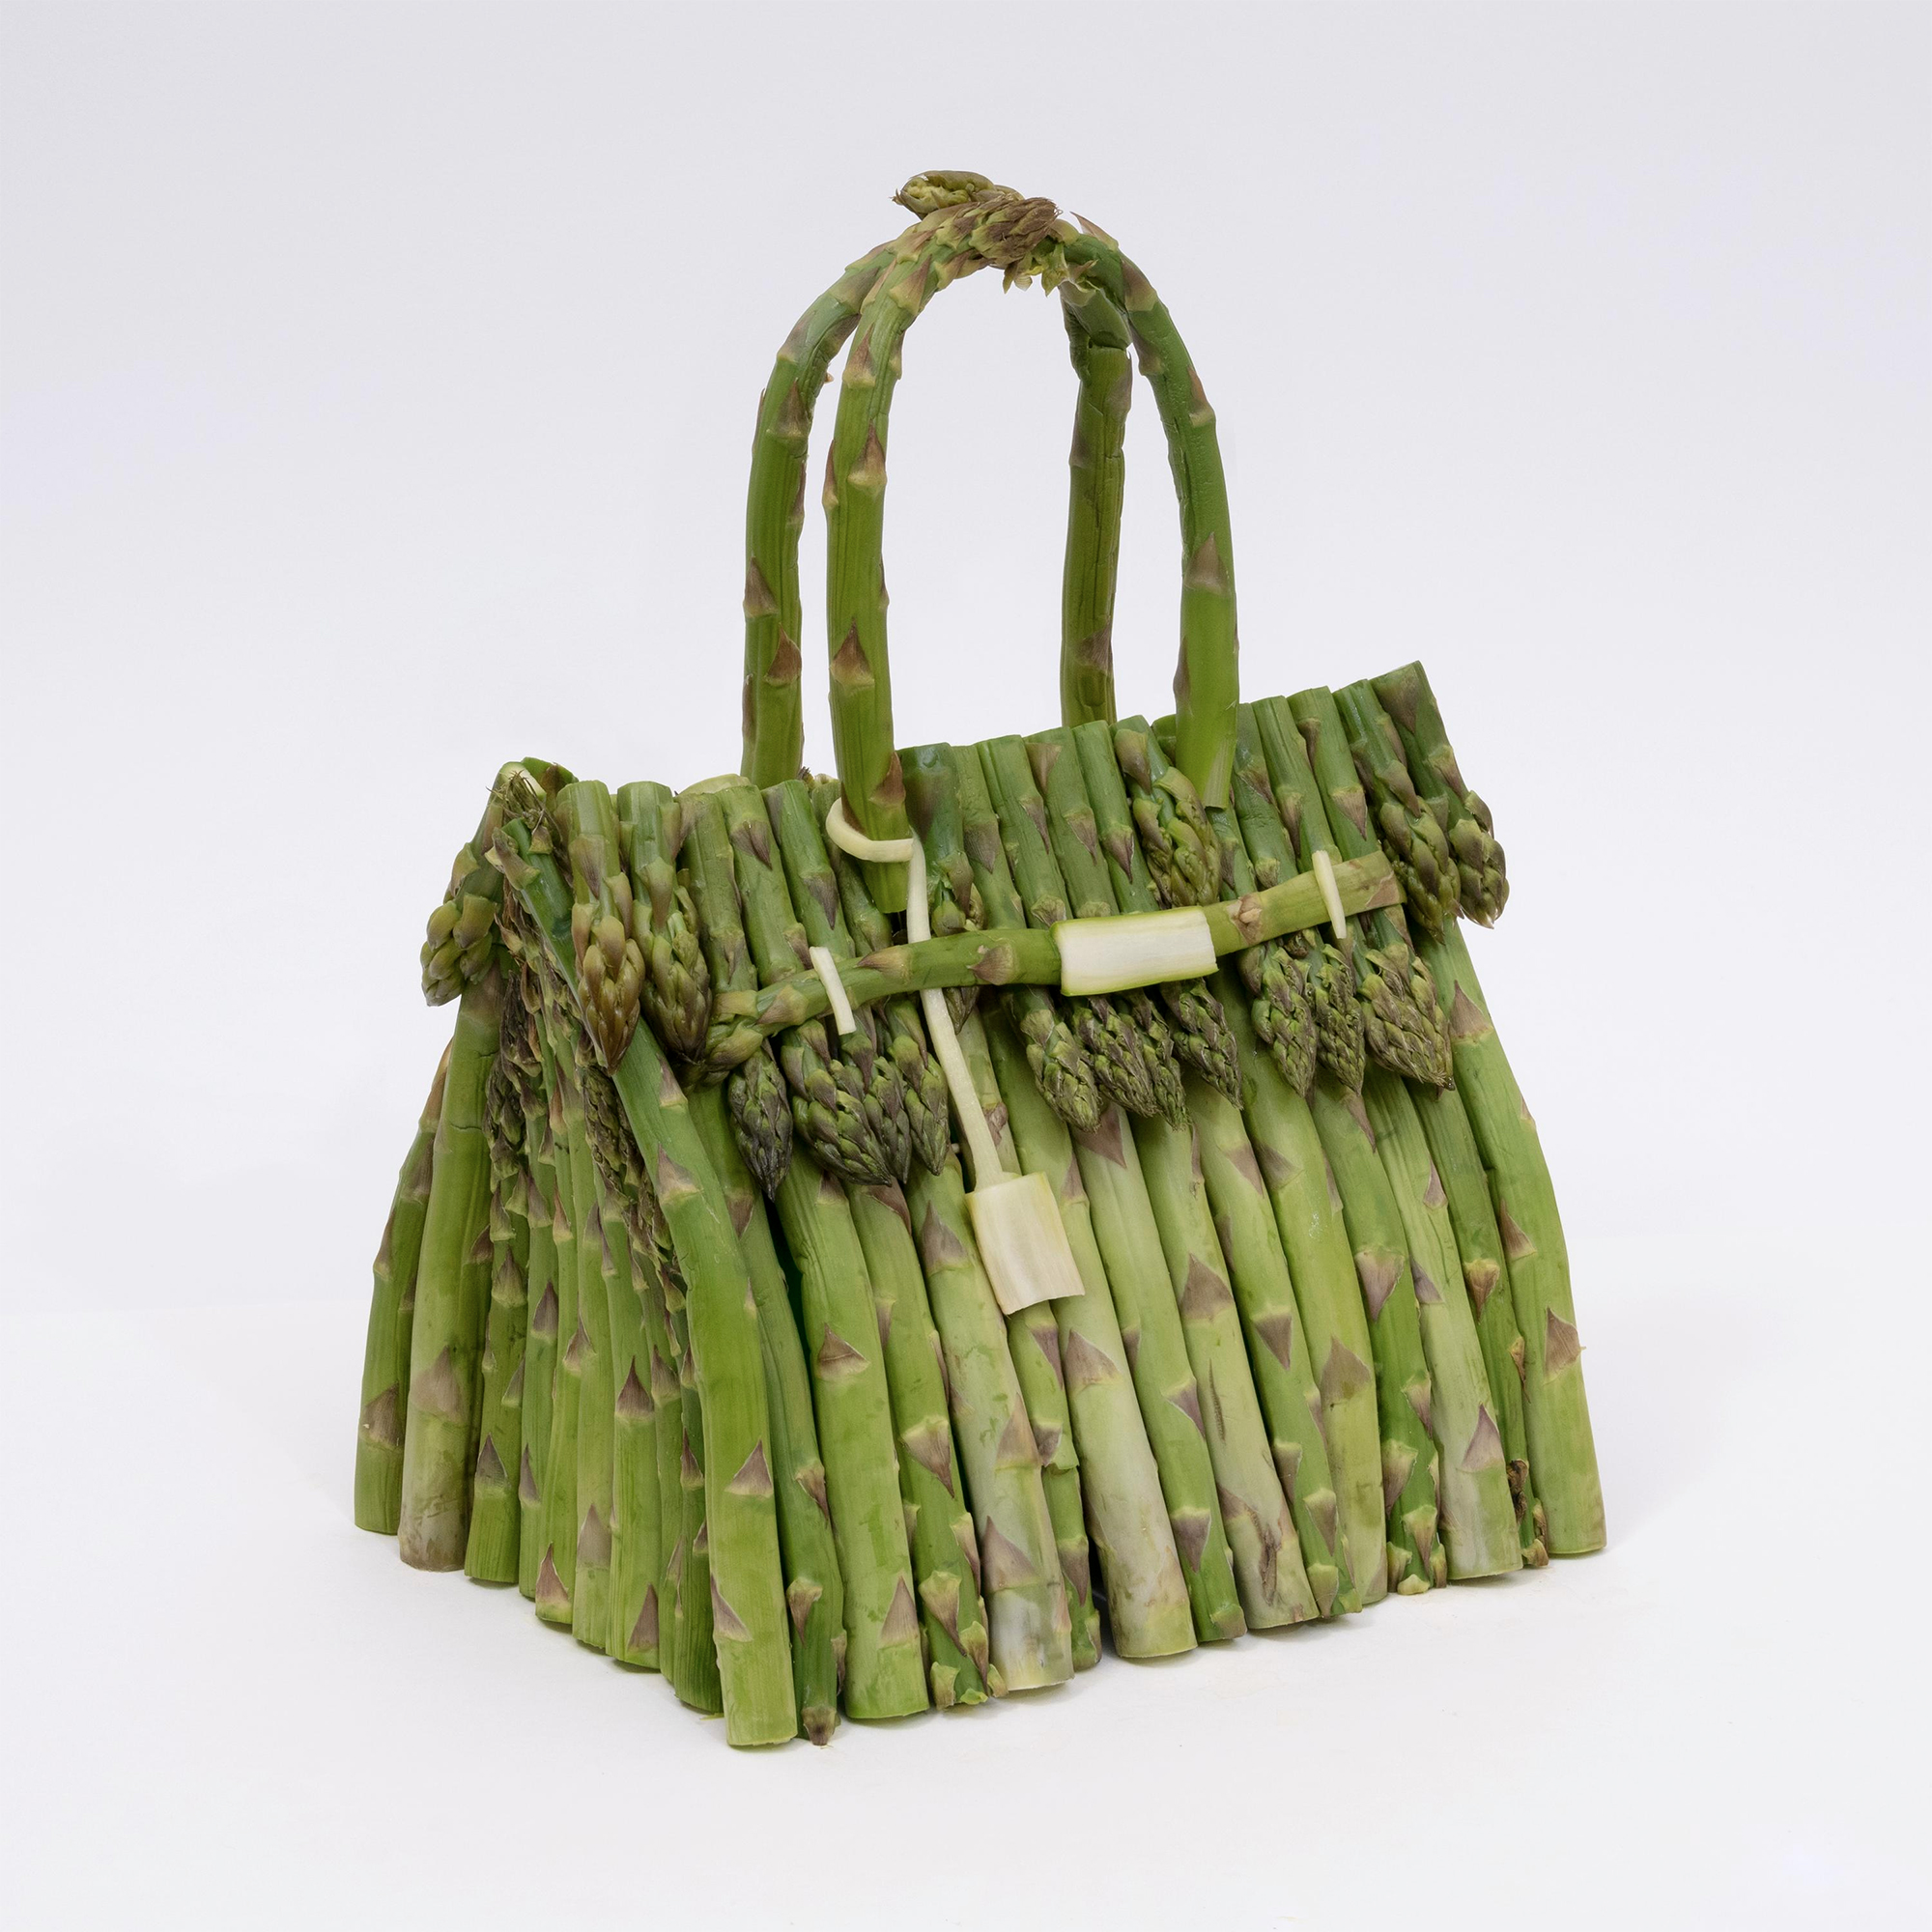 Asparagus, Cucumbers, and Cabbage Leaves Take a Fresh Twist on the Iconic Hermès Birkin Bag